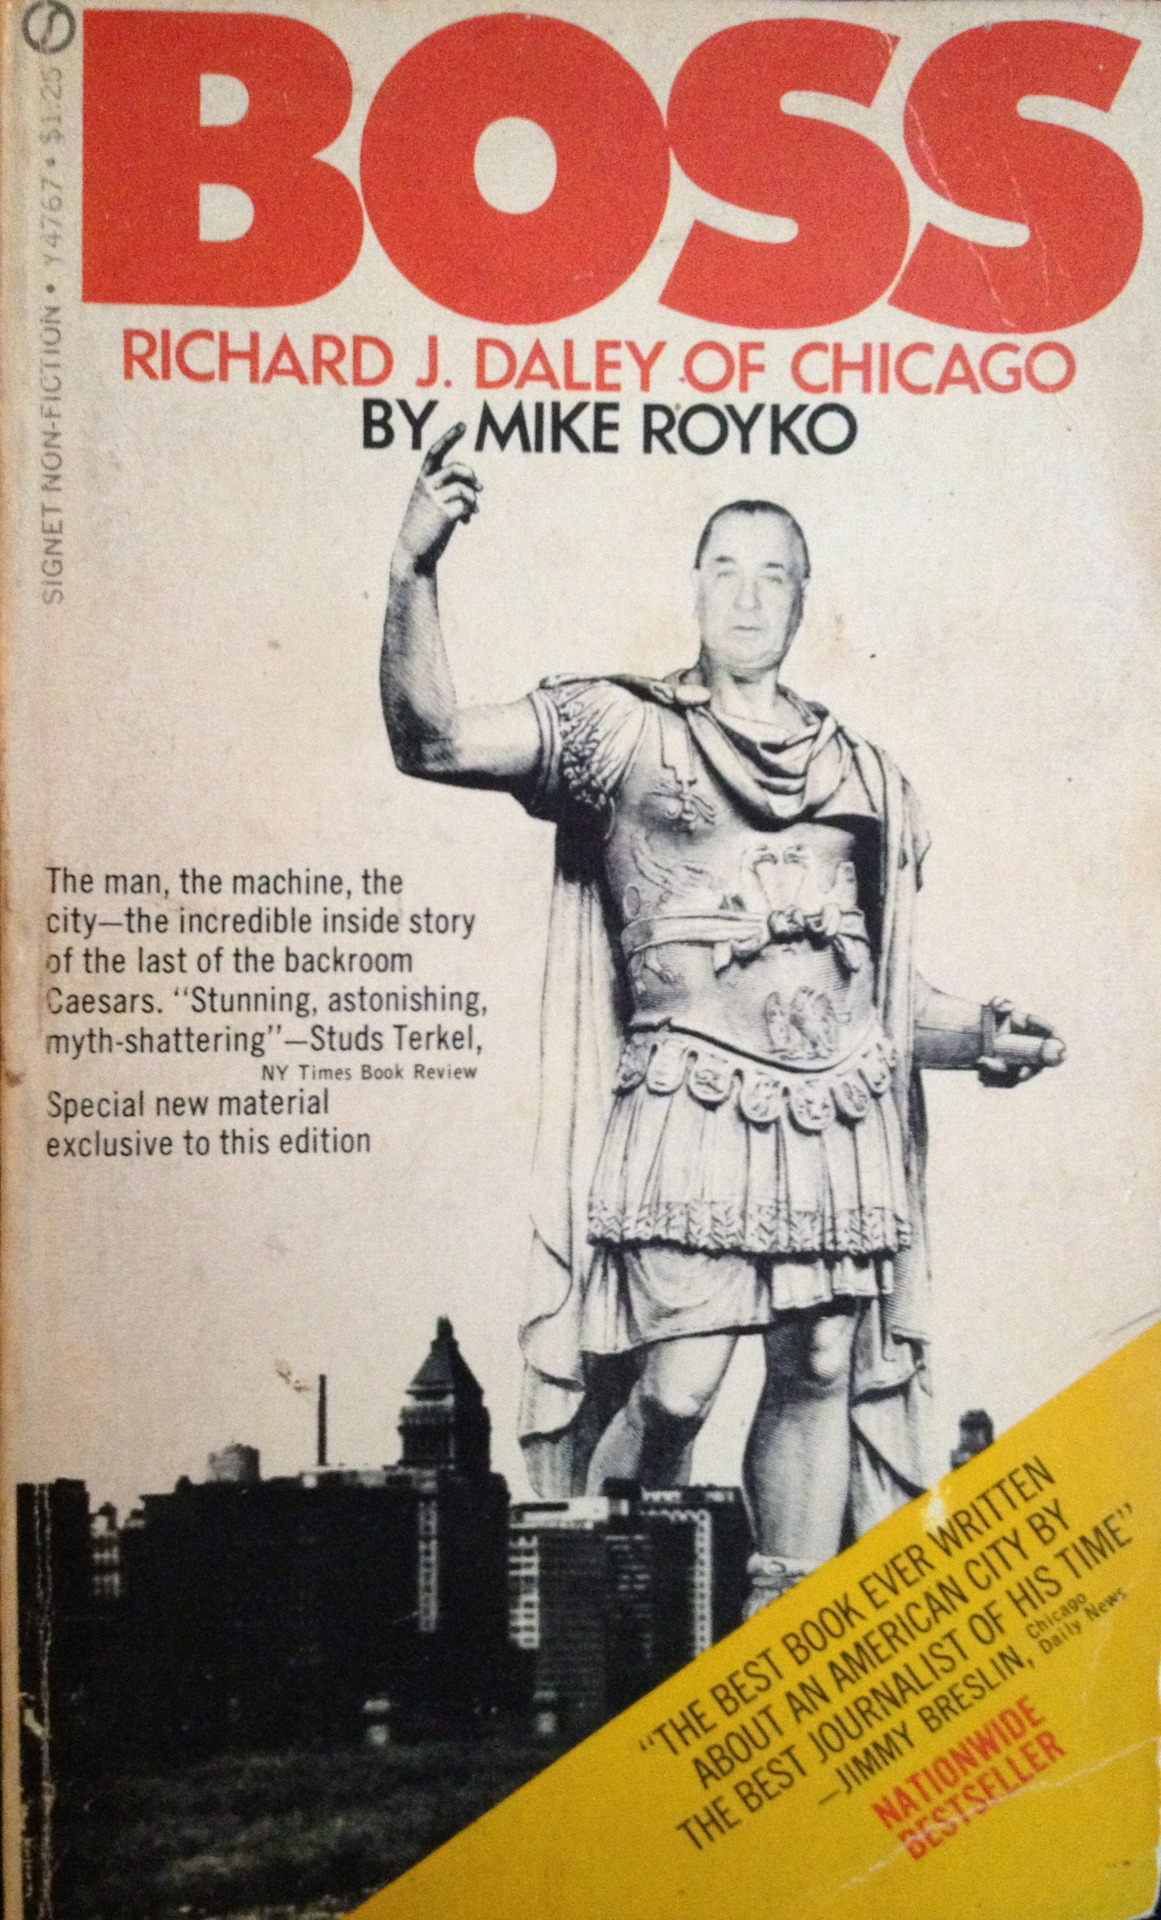 """mike royko essays """"father scott"""" form sheet"""" 1 contents: 7 mike royko, """"next time, dan essay from a collection of essays in a book."""